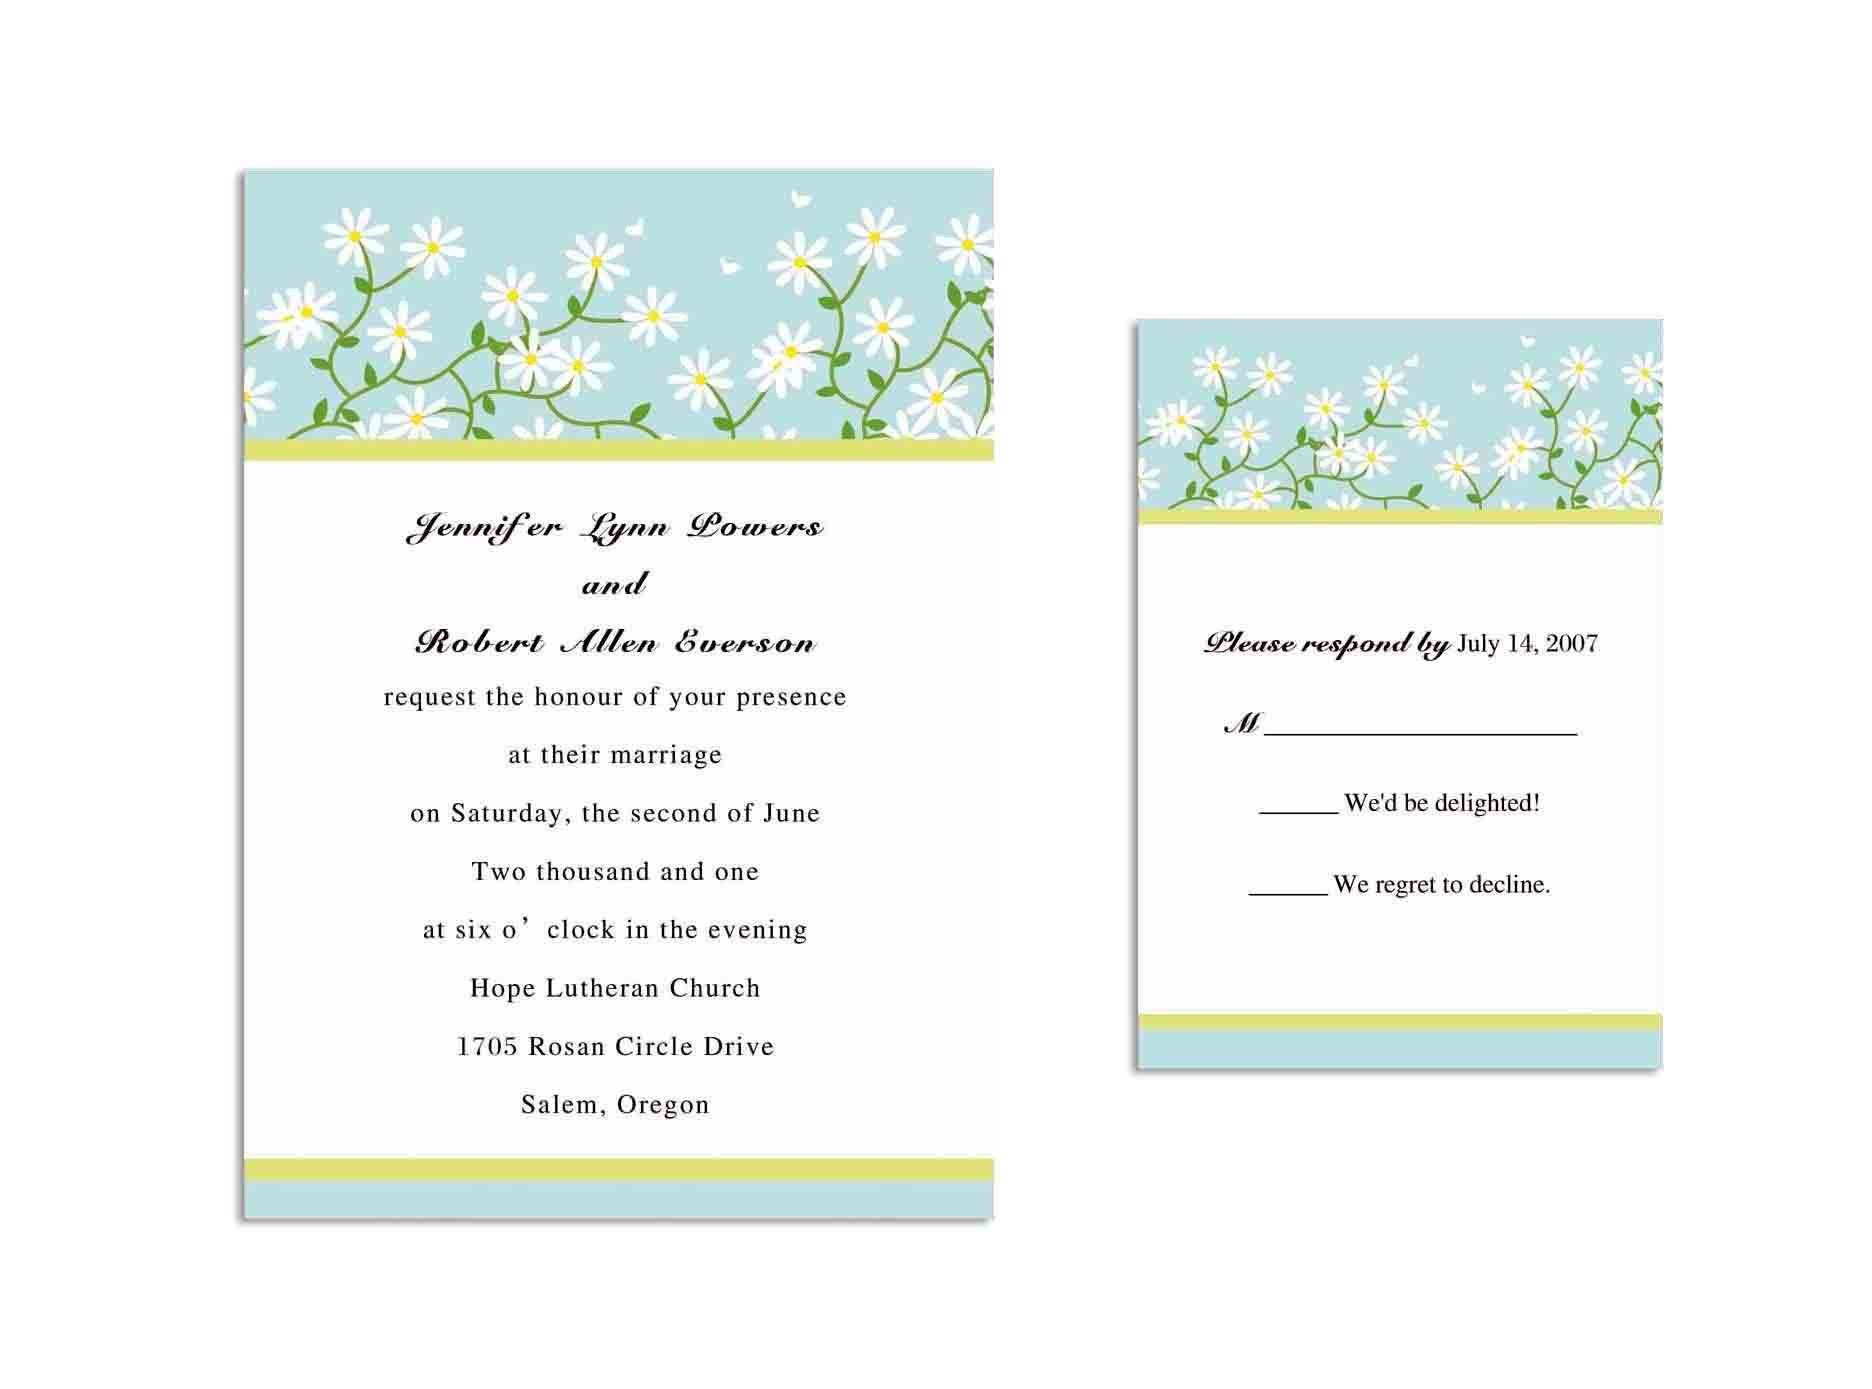 ms word invitation template free | Invitations card template ...